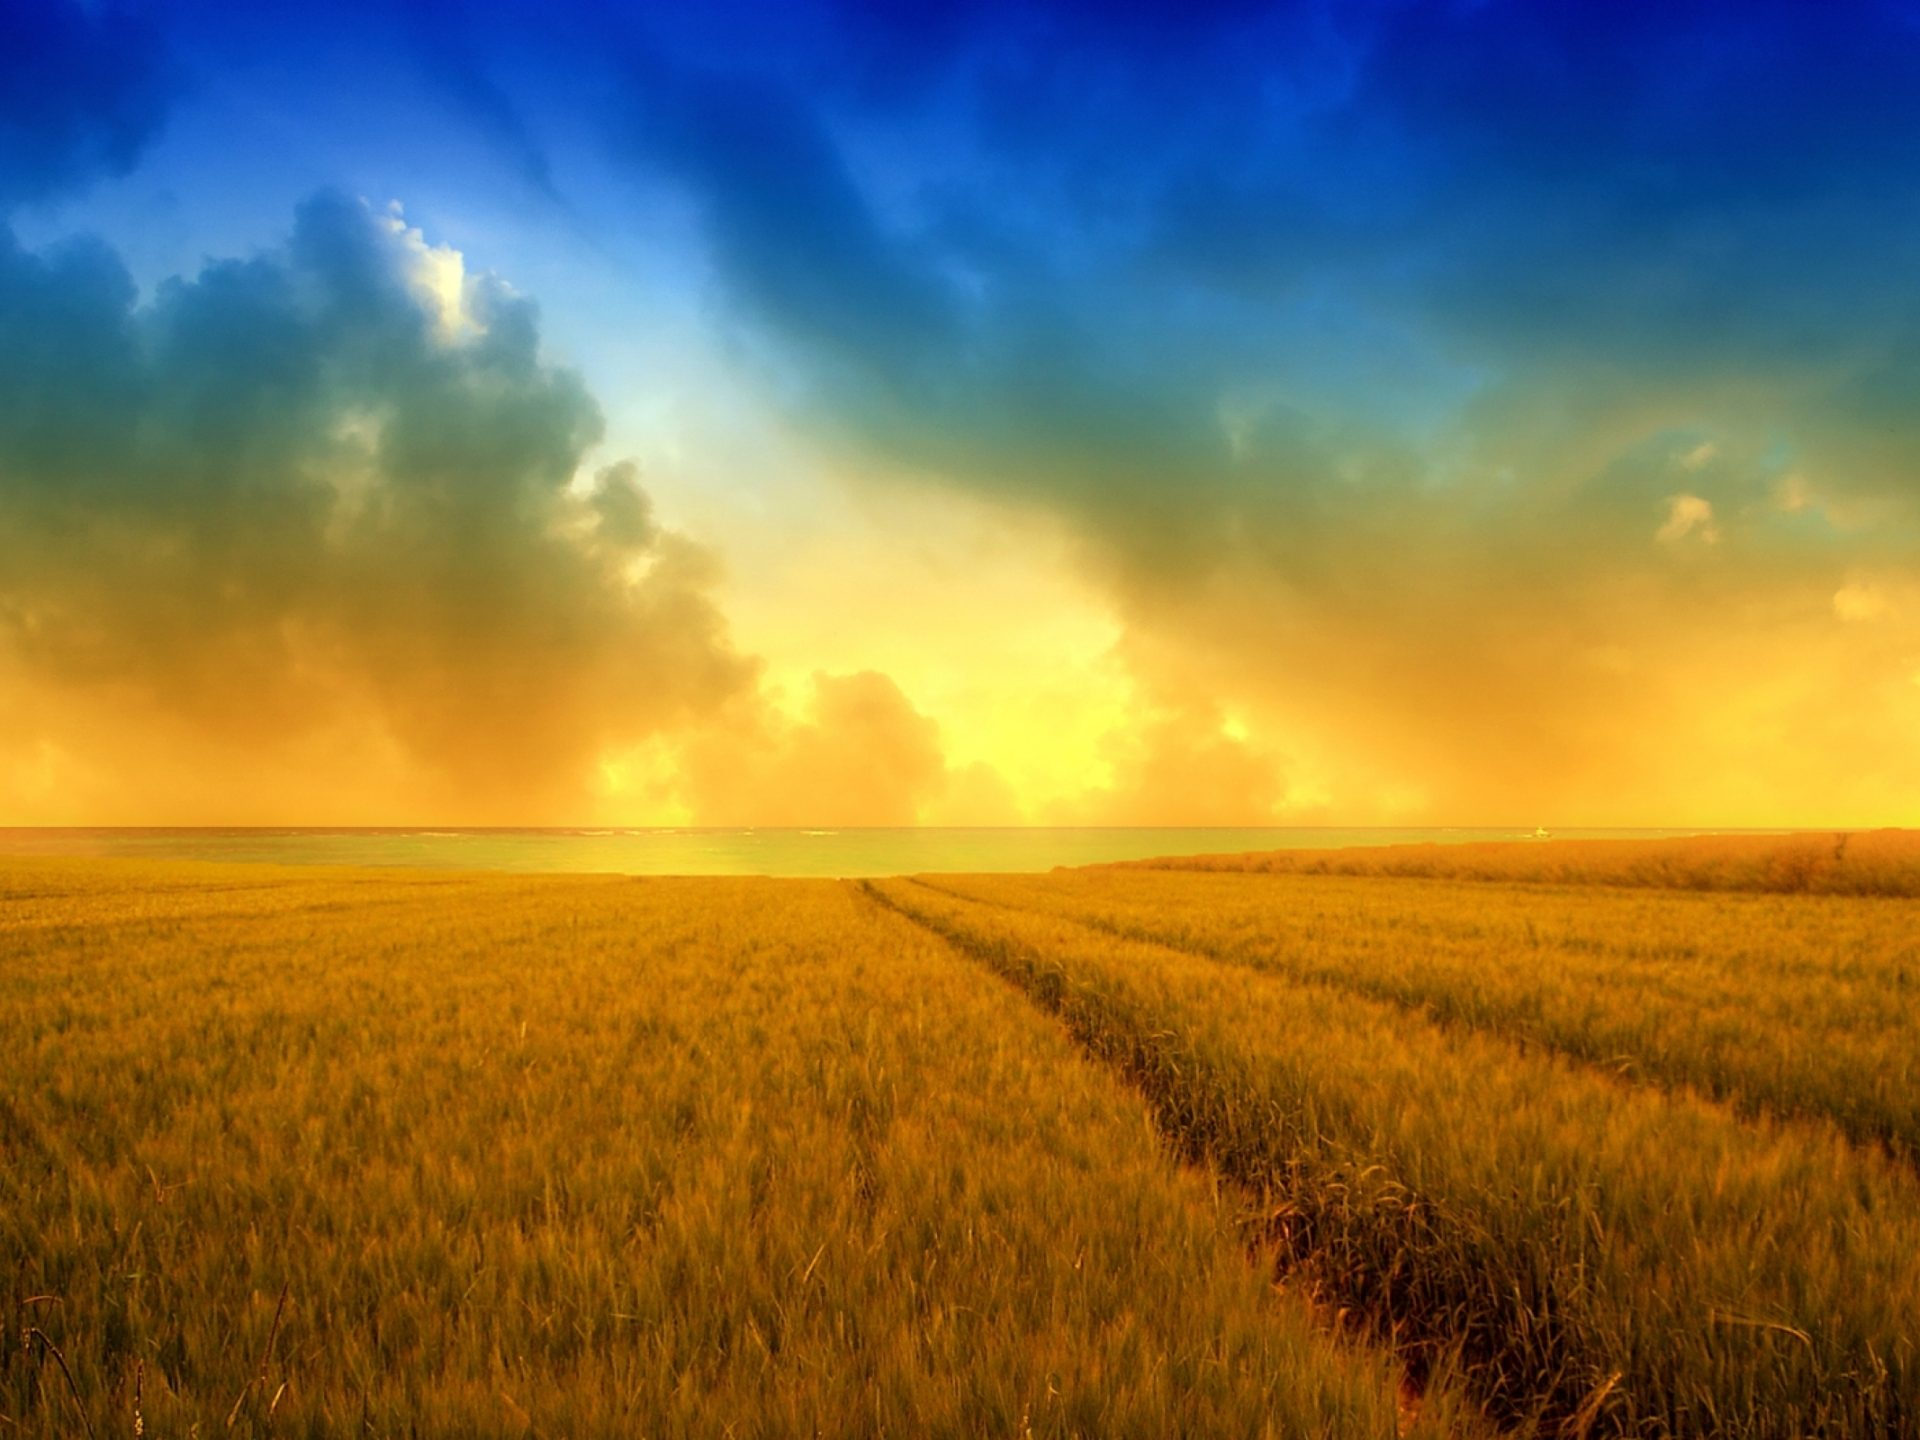 Desktop Wallpaper Fall Flowers Hd Wallpapers Golden Harvest Wheat Field 2560x1600